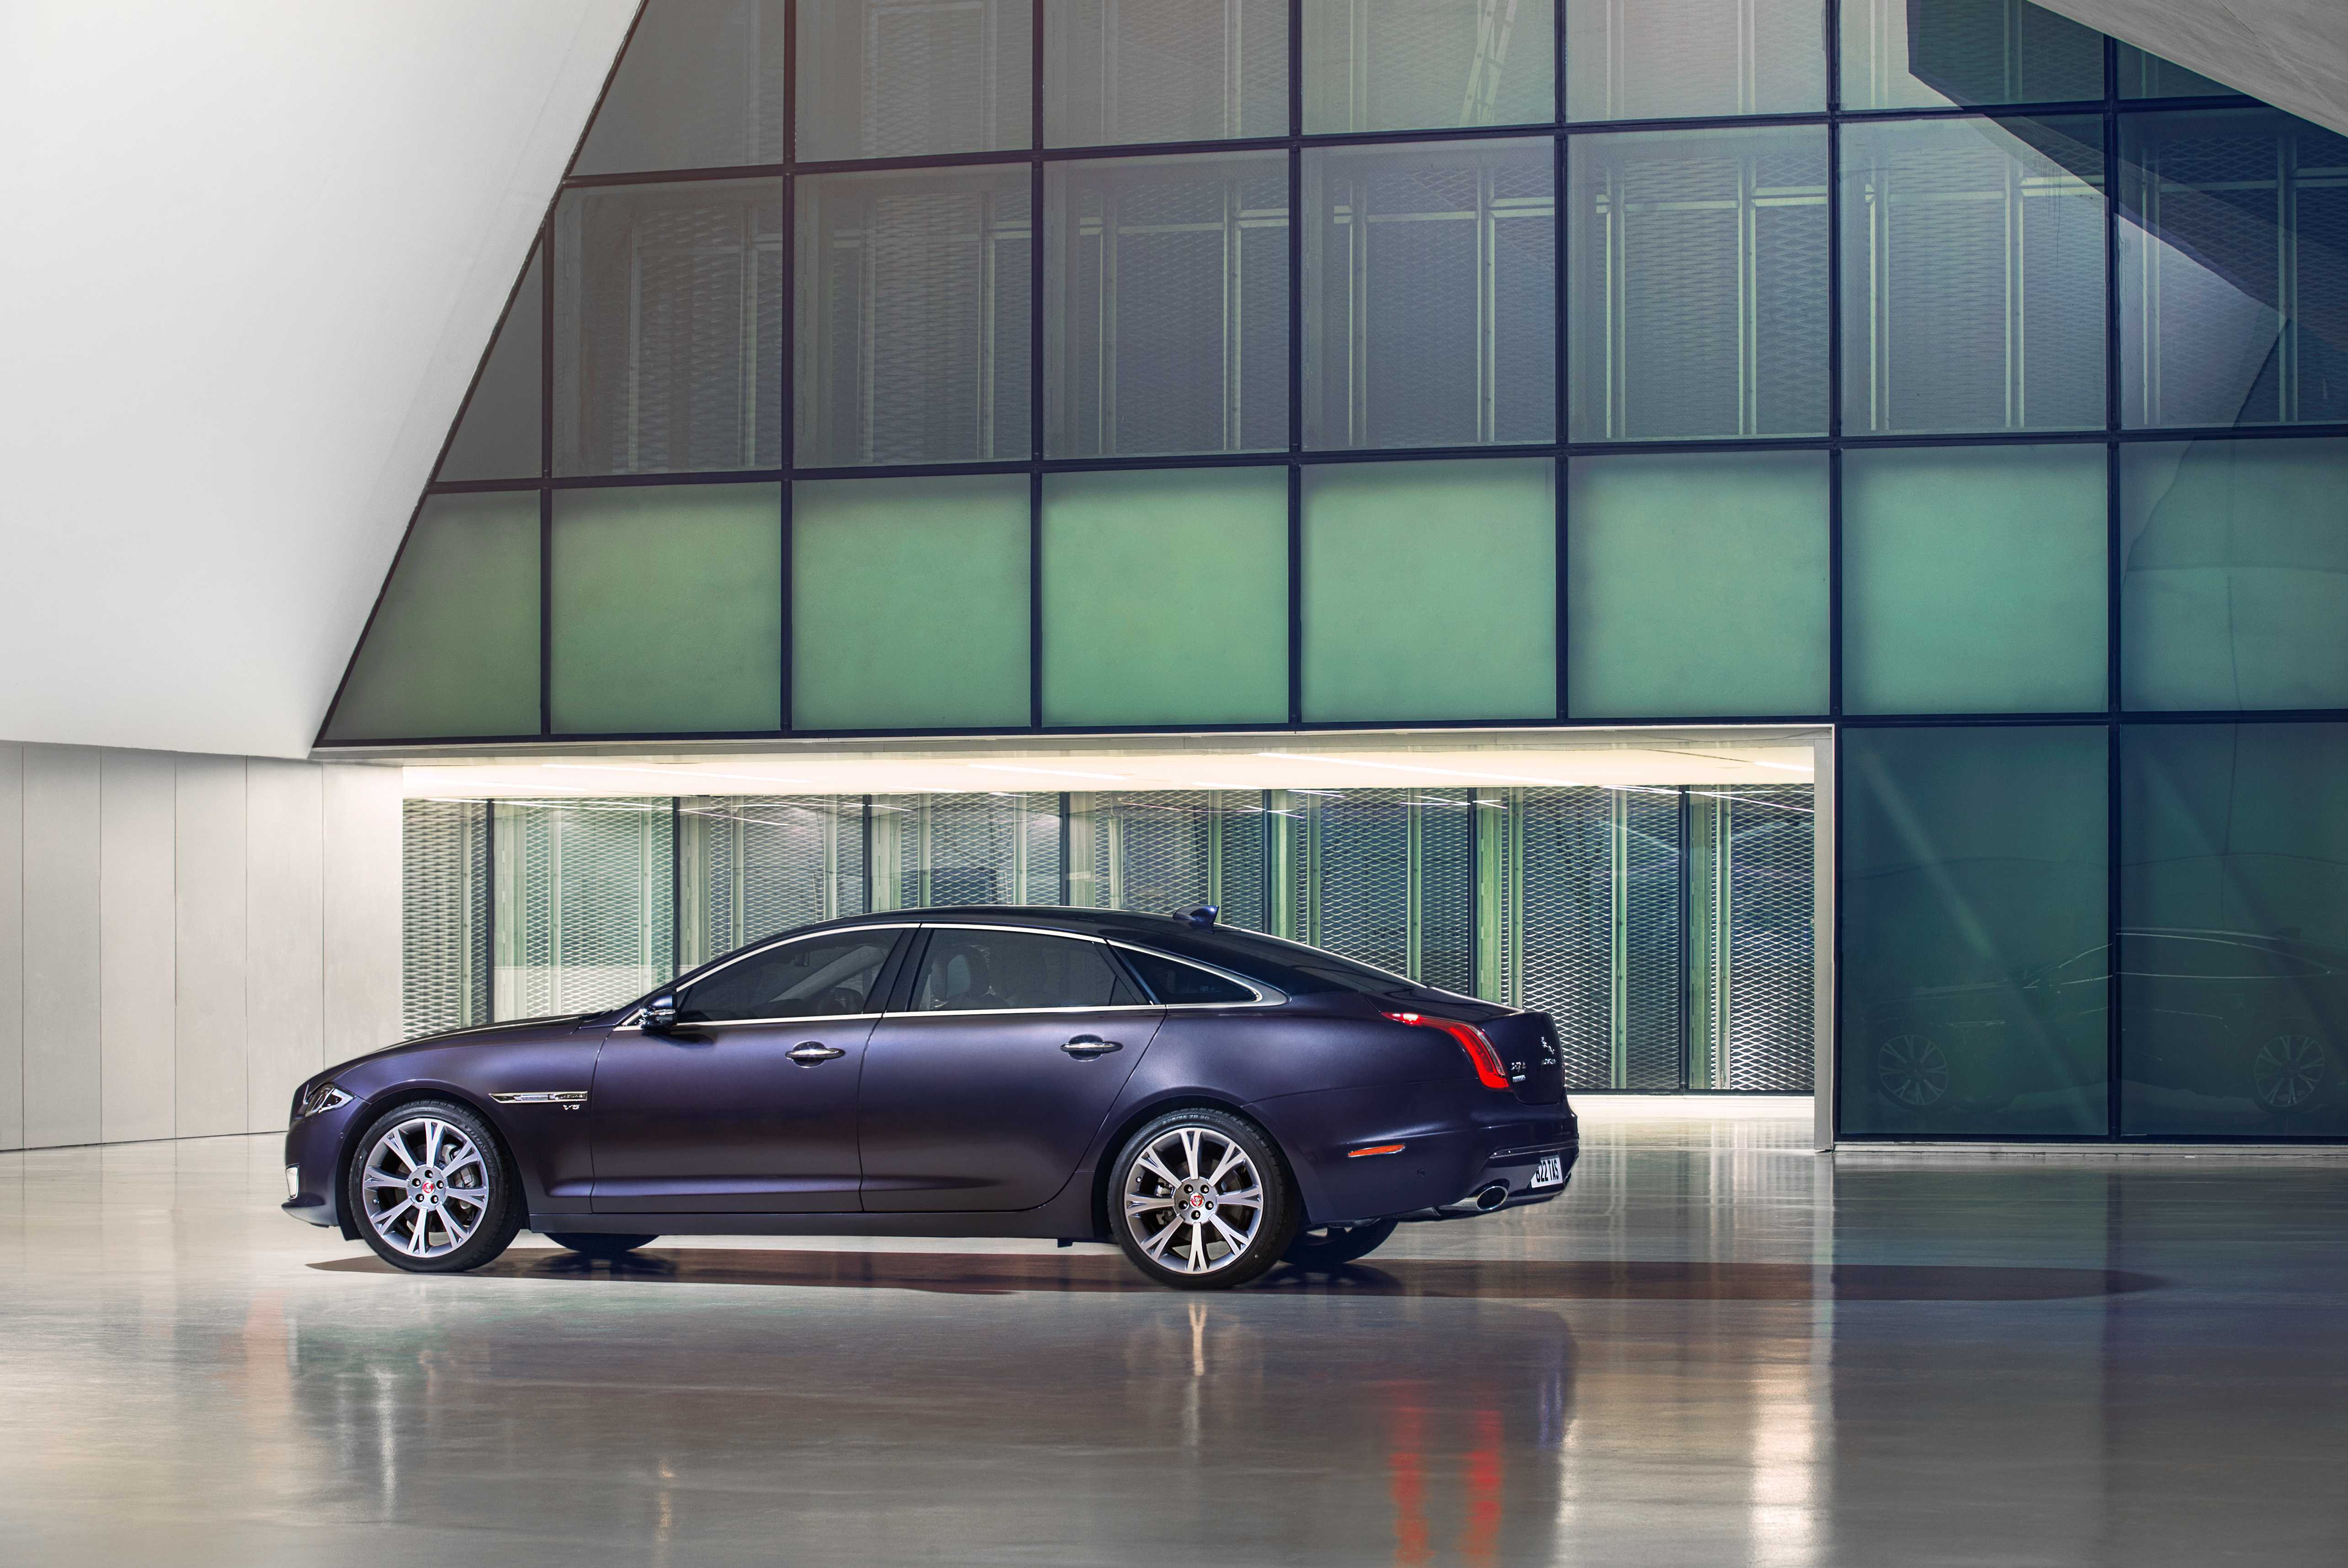 engine side car new saloon range list road receives ingenium engines actionop price petrol sports test front with jaguar xe